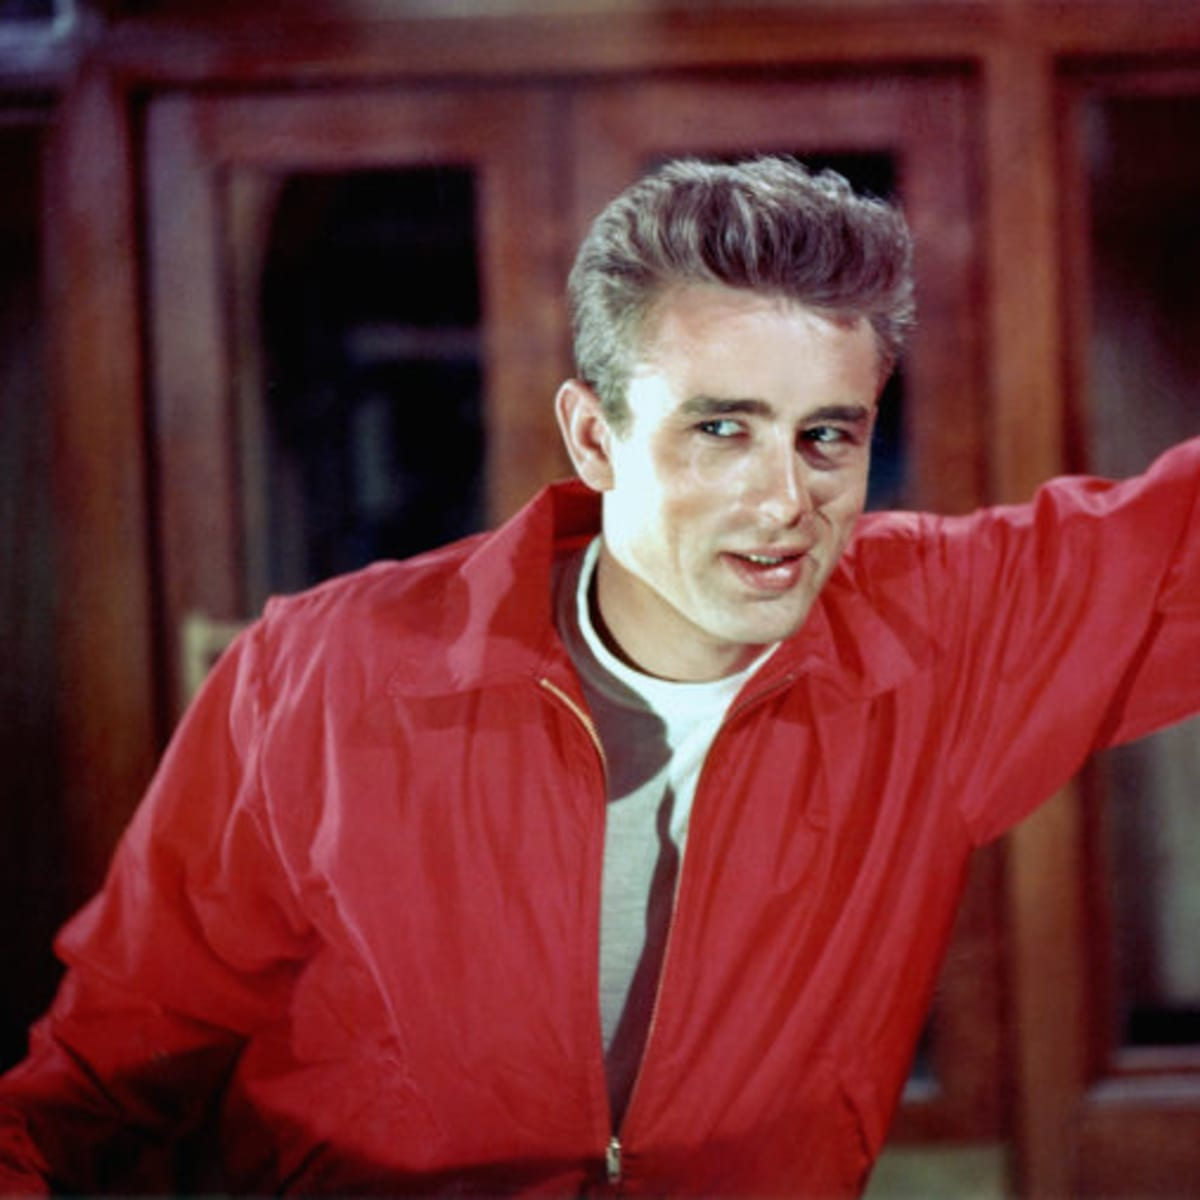 How Old Is James Dean